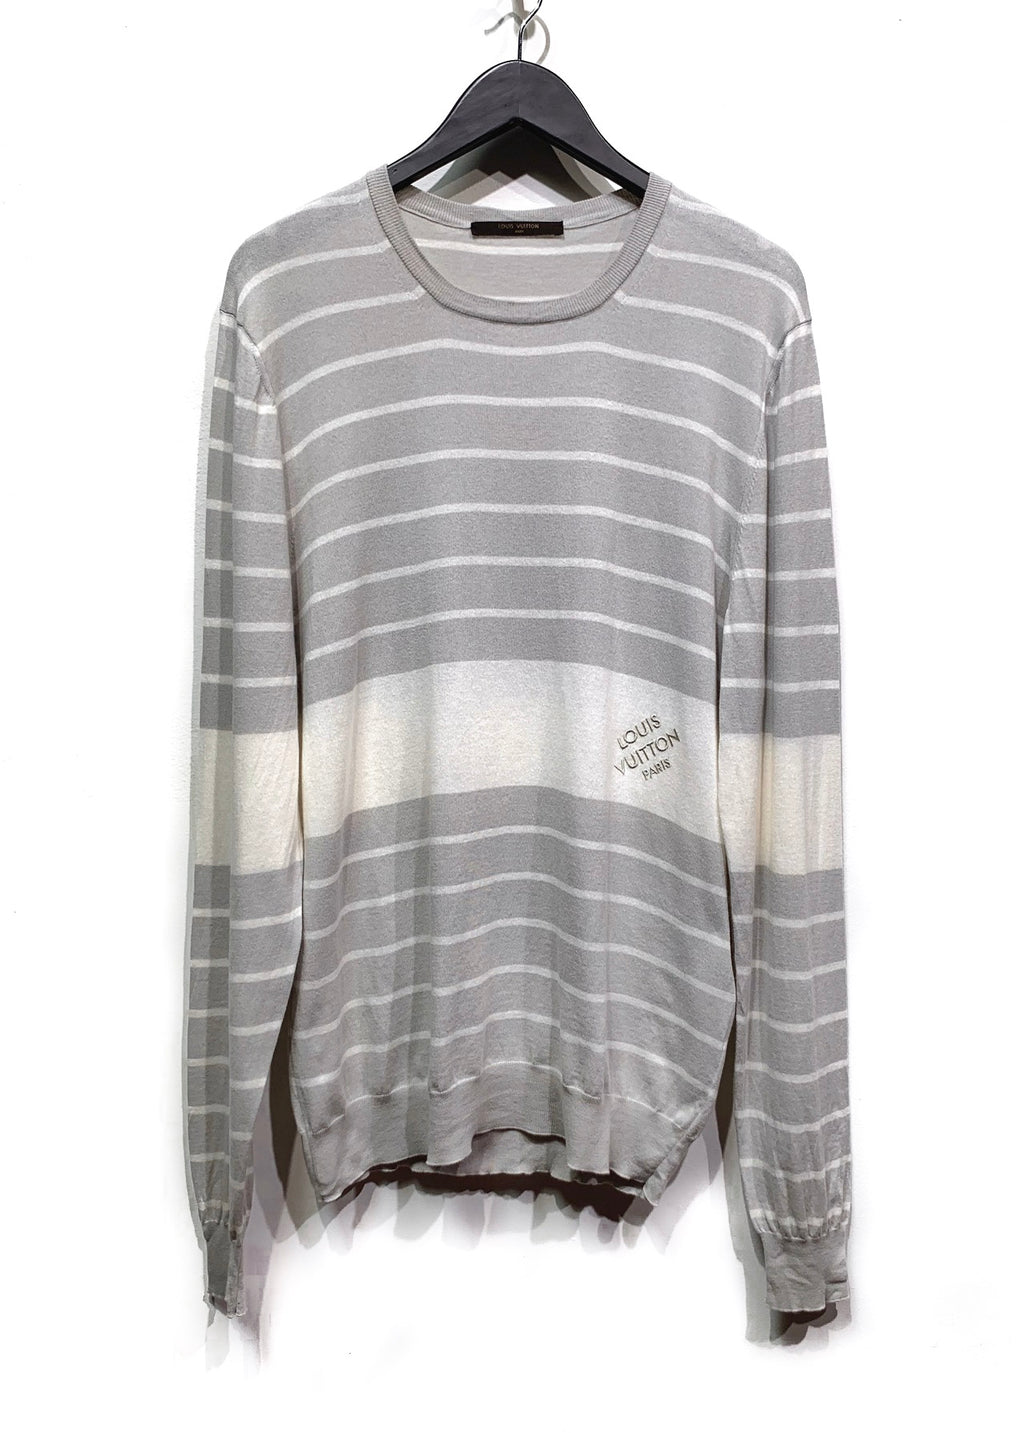 Louis Vuitton Light Grey Striped Embroidered Logo Sweater